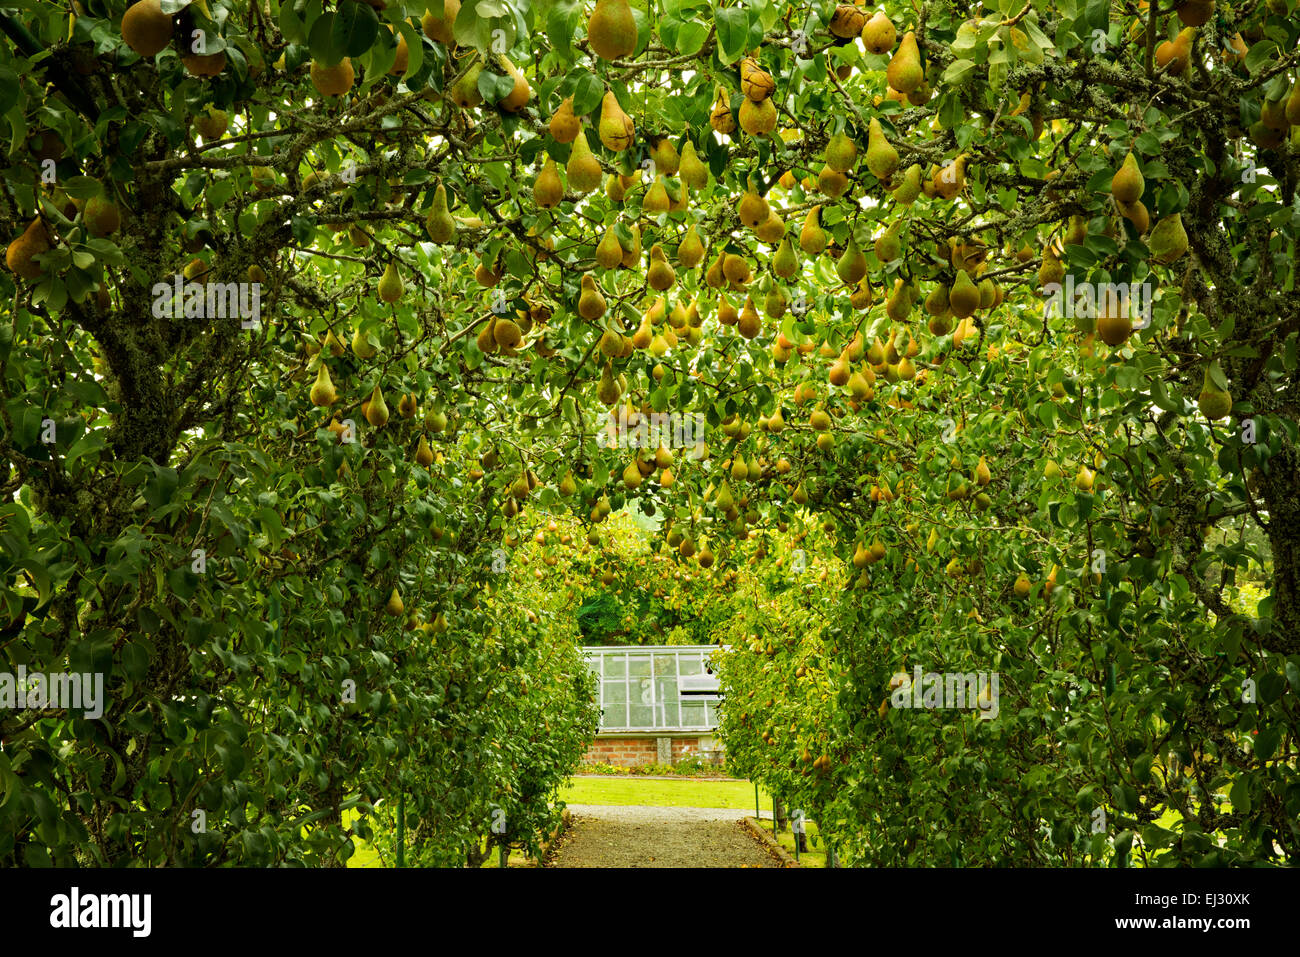 Pear arbor and path in the Gardens at the Dromoland Castle, Ireland - Stock Image